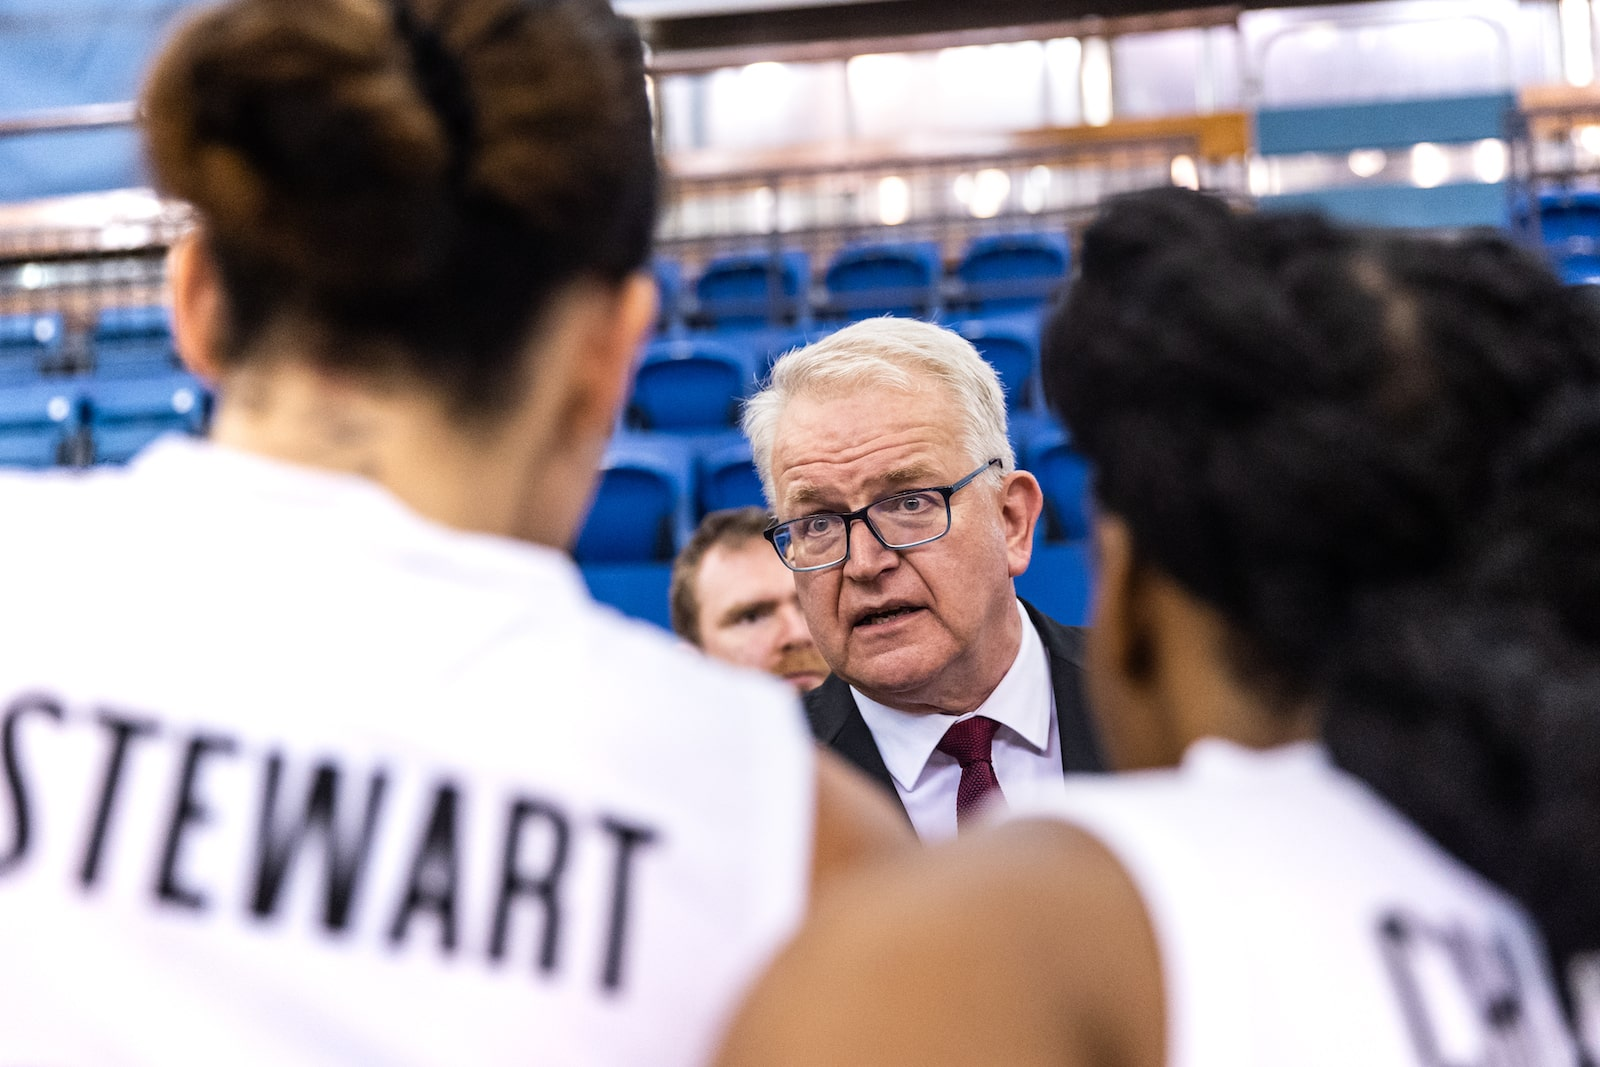 Clark hoping for European success with women's team